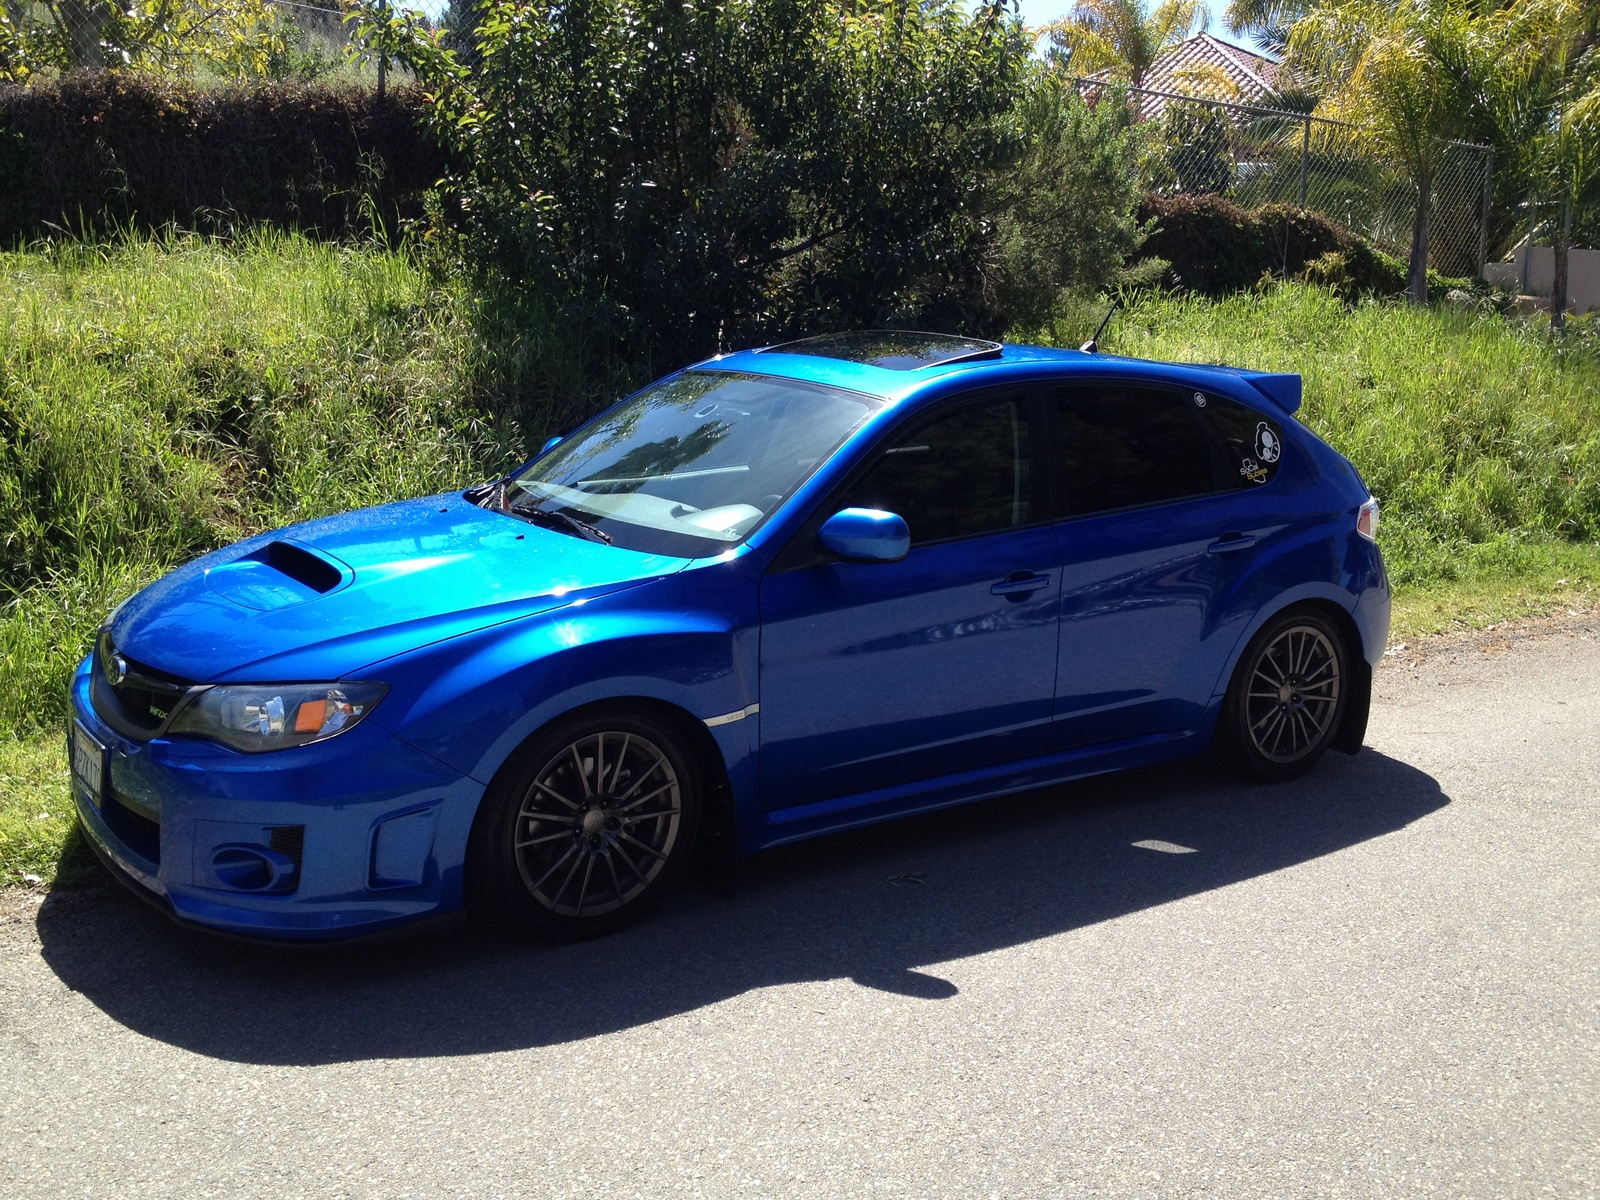 2012 subaru wrx and sti research page wrx premium limited and autos weblog. Black Bedroom Furniture Sets. Home Design Ideas